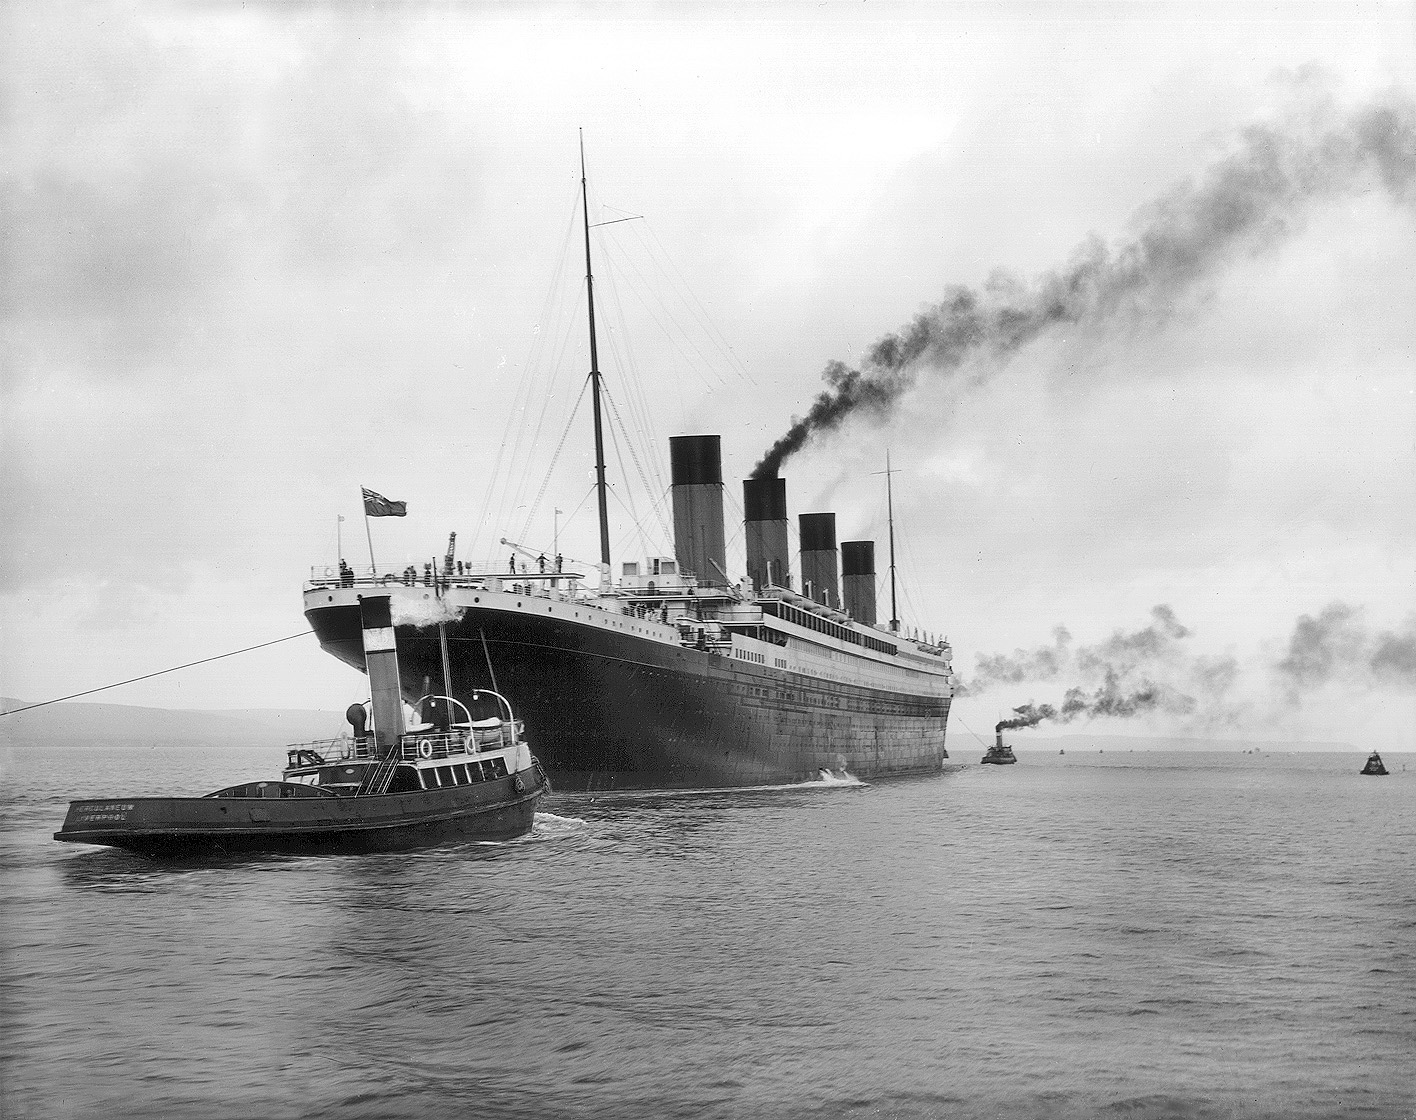 Titanic leaving Belfast for her sea trials, April 2, 1912